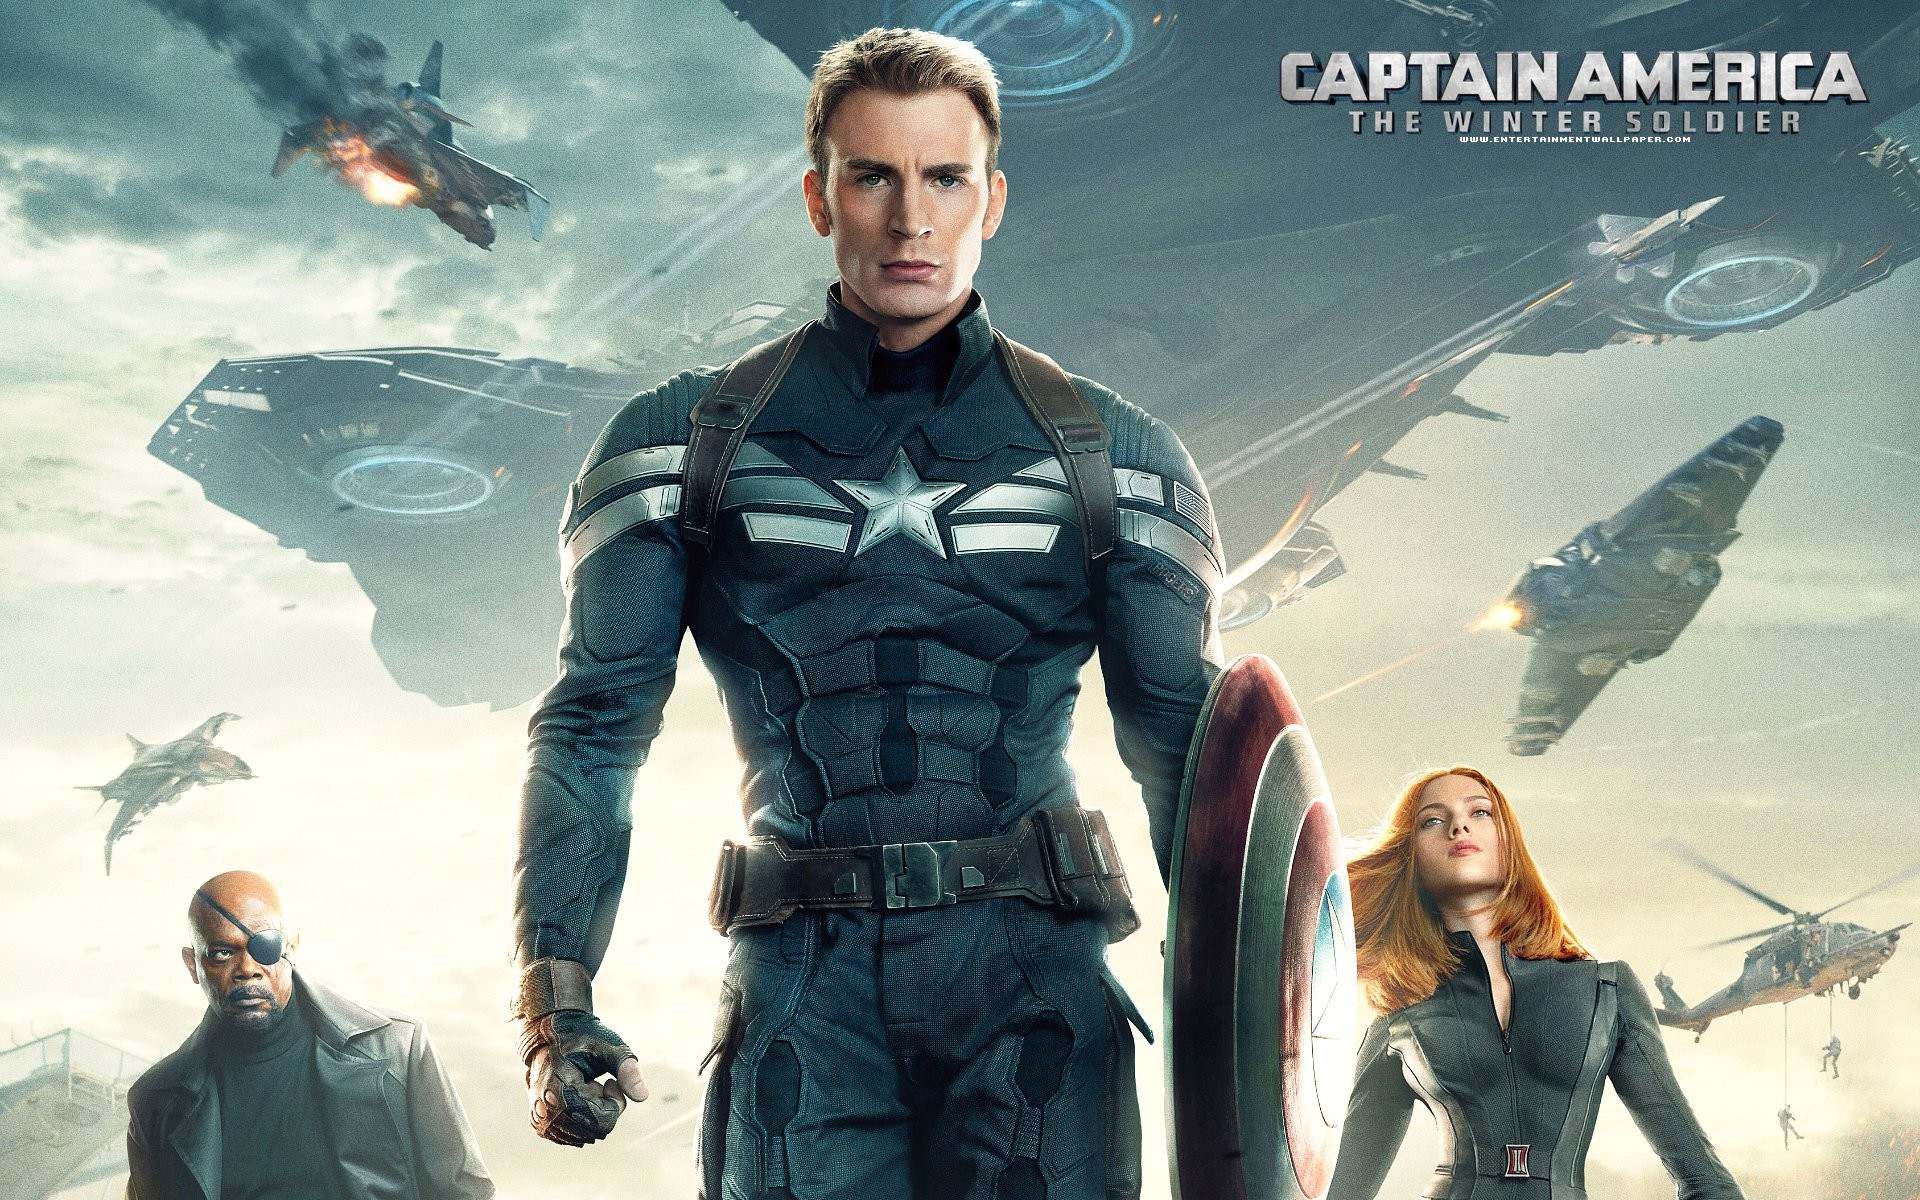 1920x1200 Captain America The Winter Soldier Poster